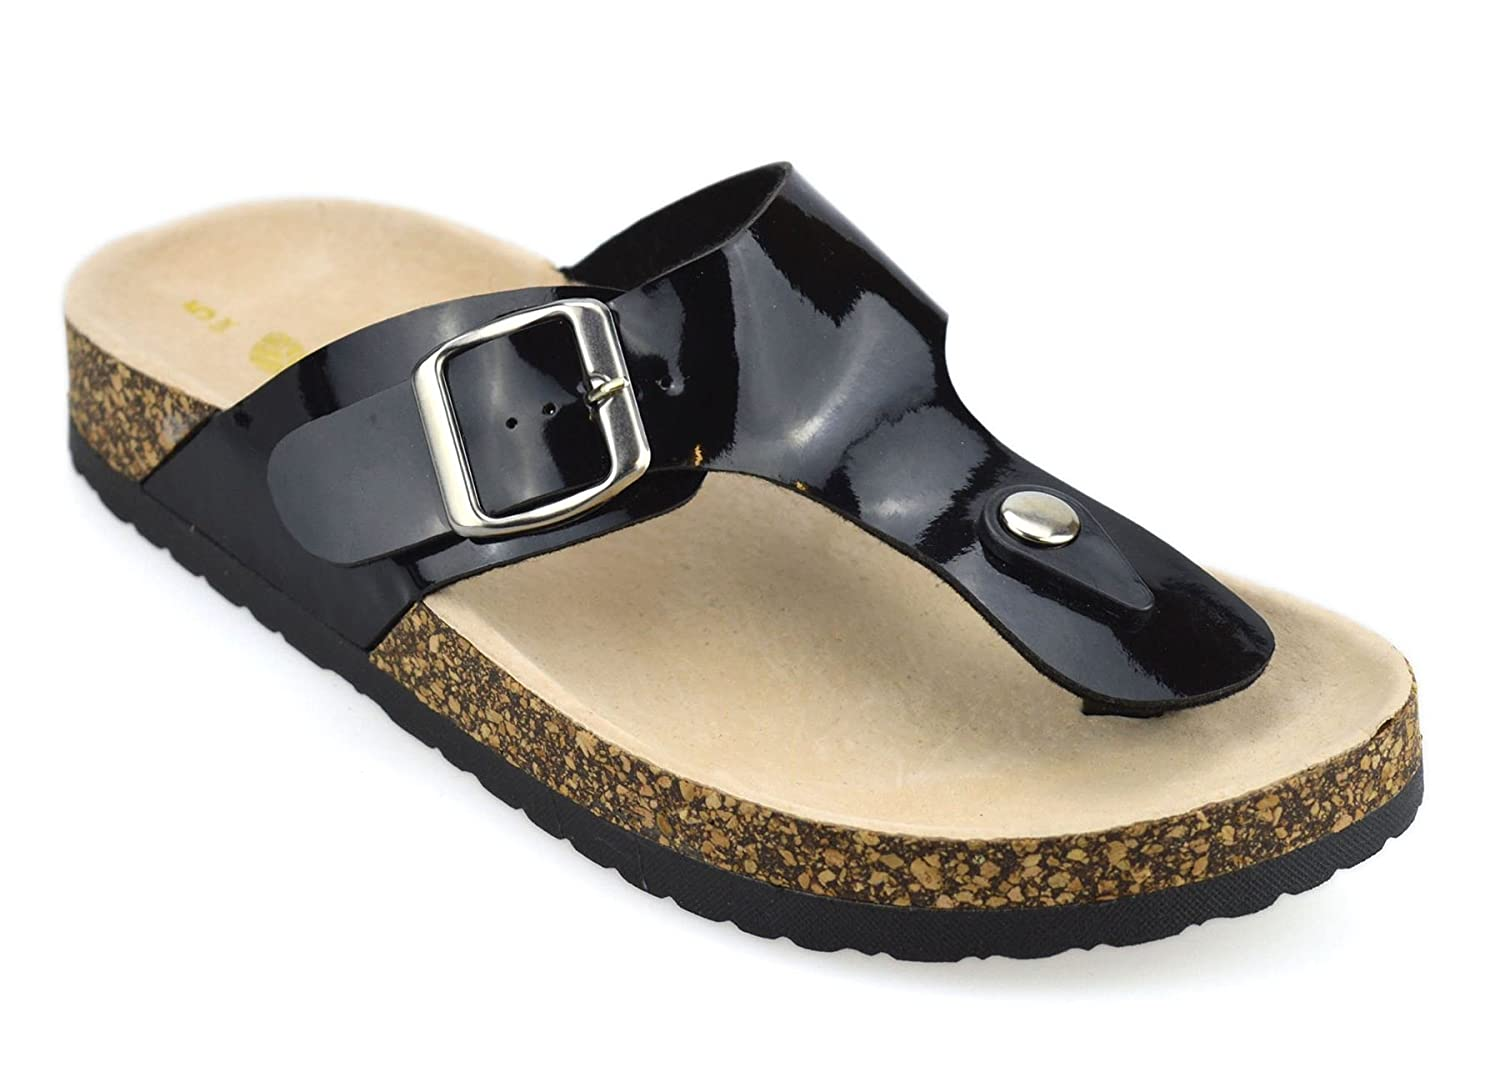 a93d64b522d0 Womens Leather Insole Flat Toe Post Flip Flops Summer Mules Footbed Sandals  Shoes  Amazon.co.uk  Shoes   Bags